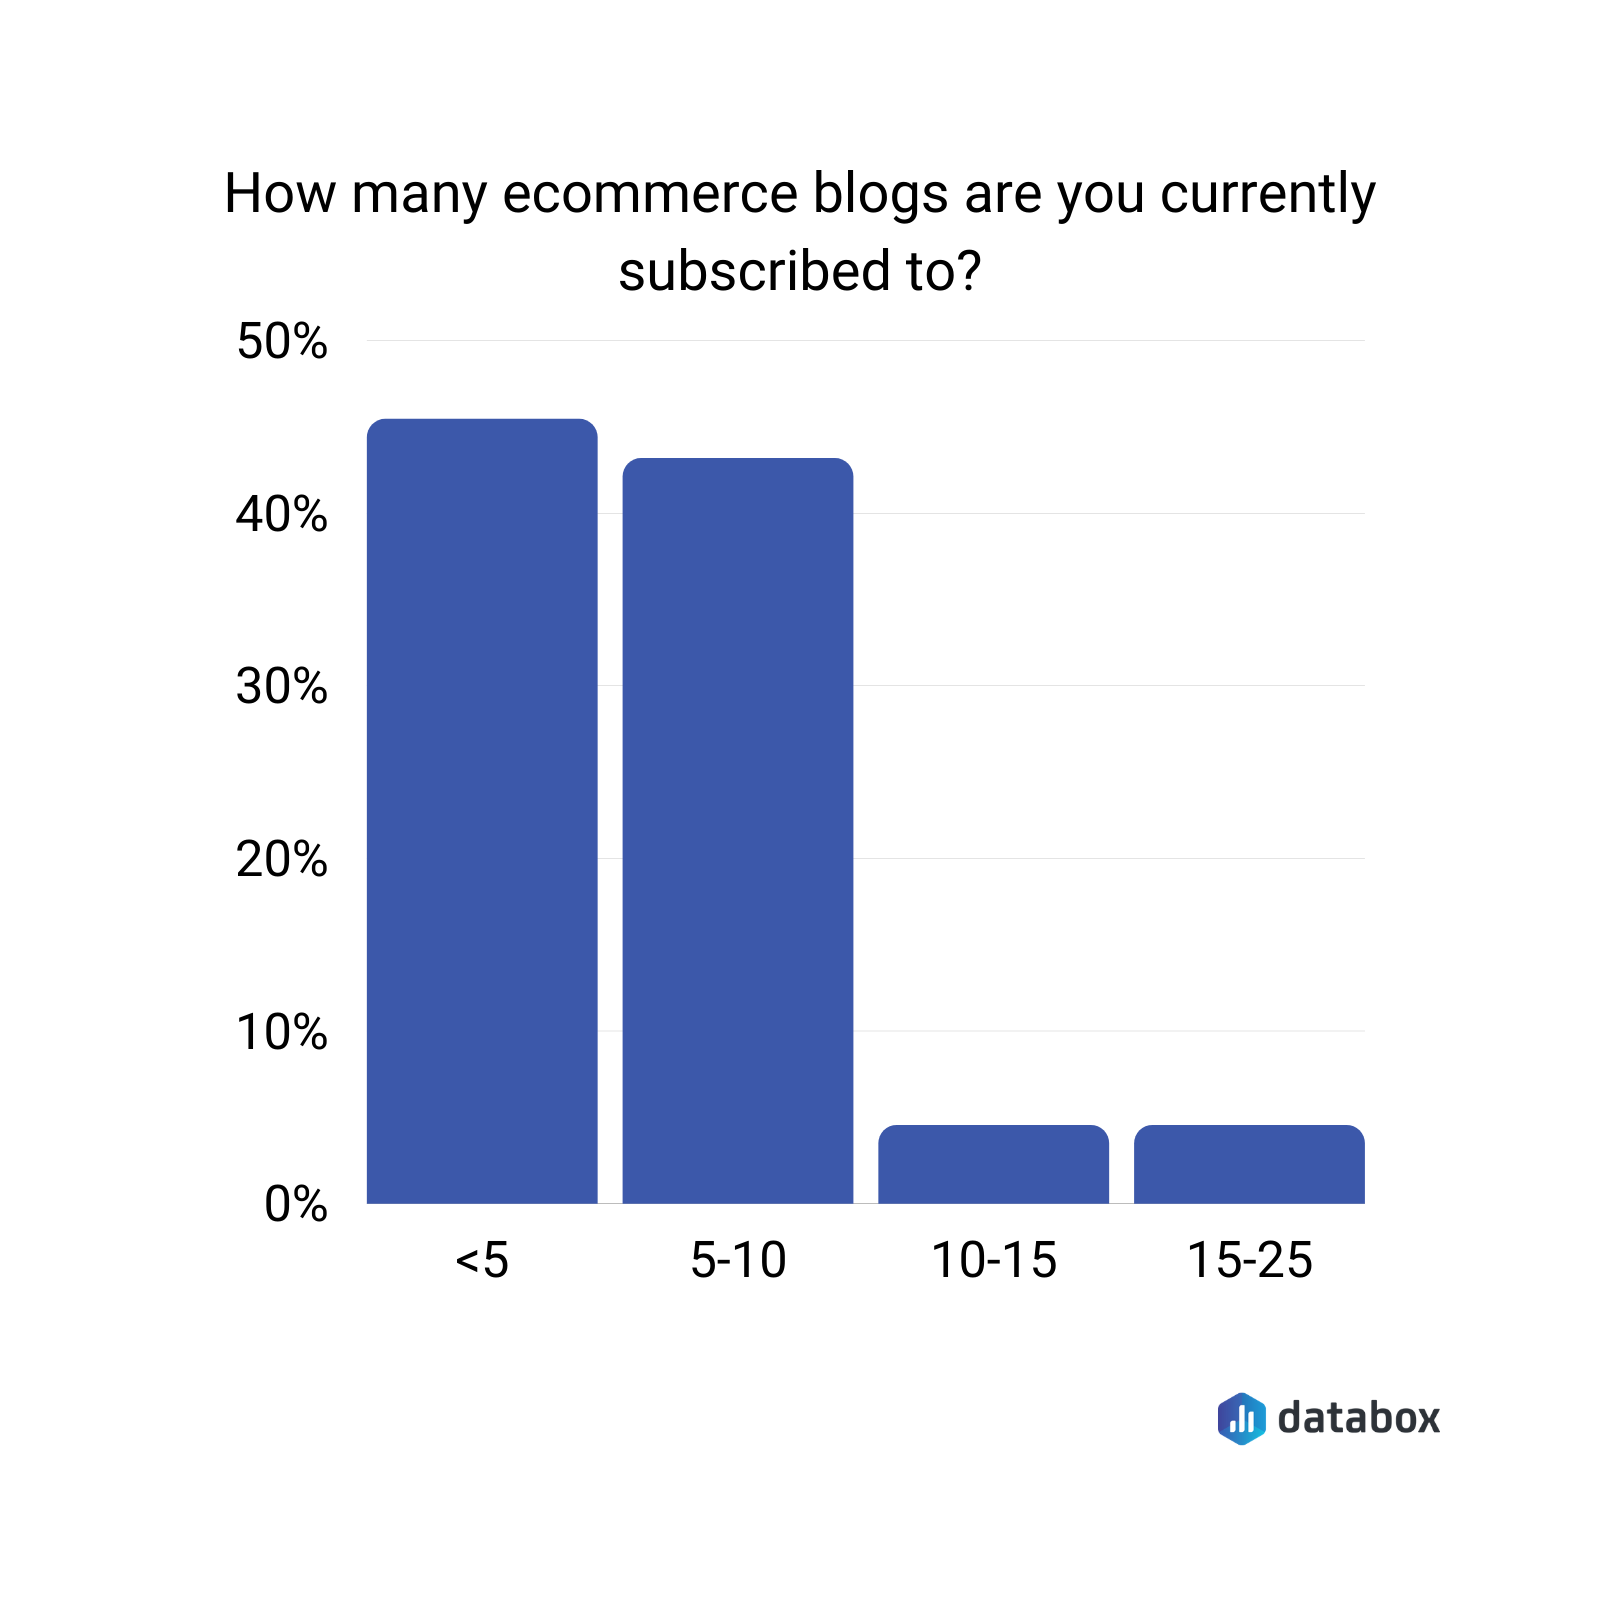 how many ecommerce blogs are you currently subscribed to?